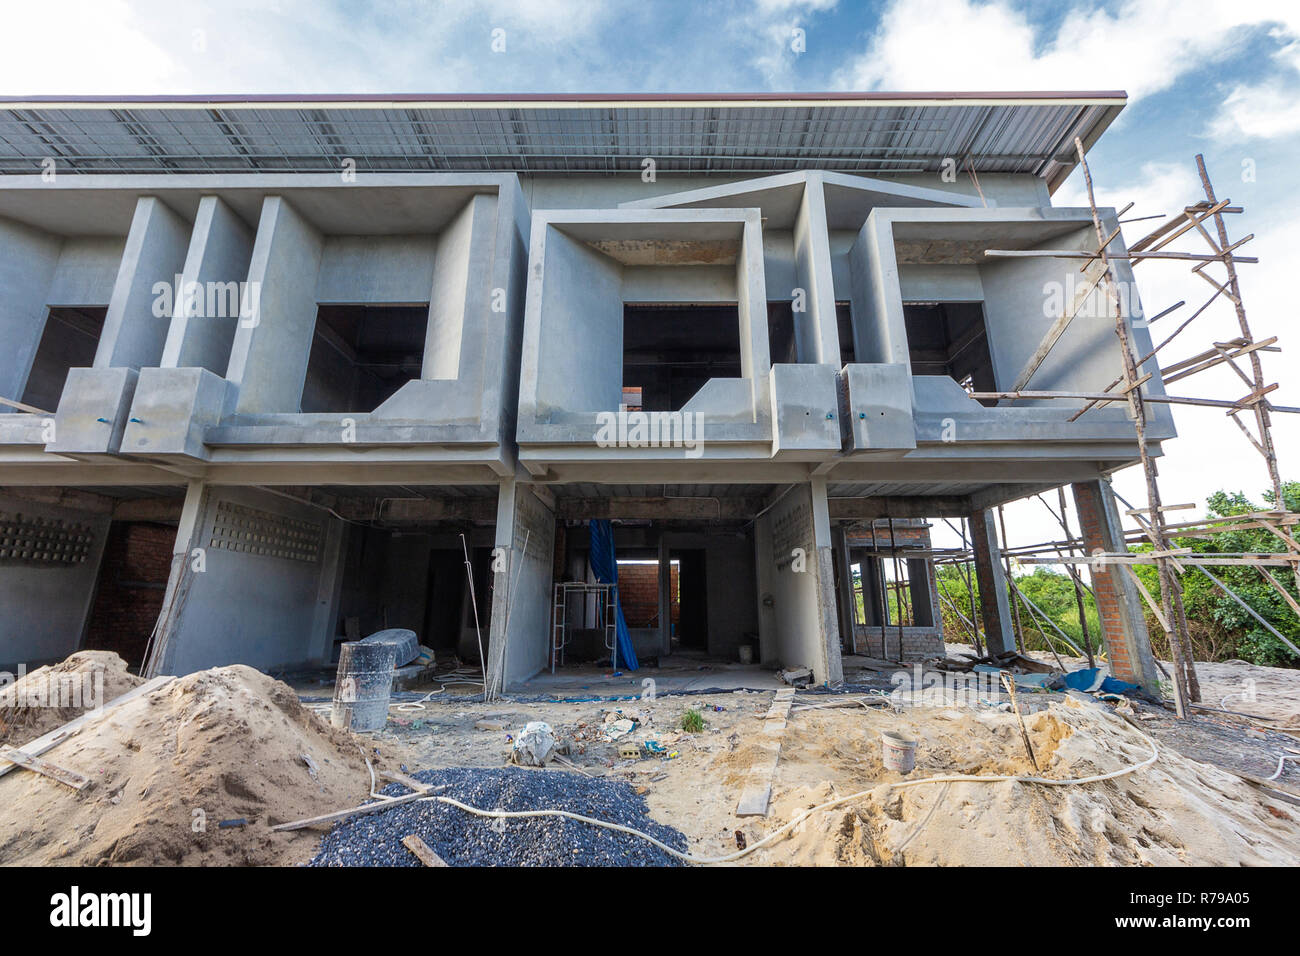 Two storey houses are under construction in thailand modern house design